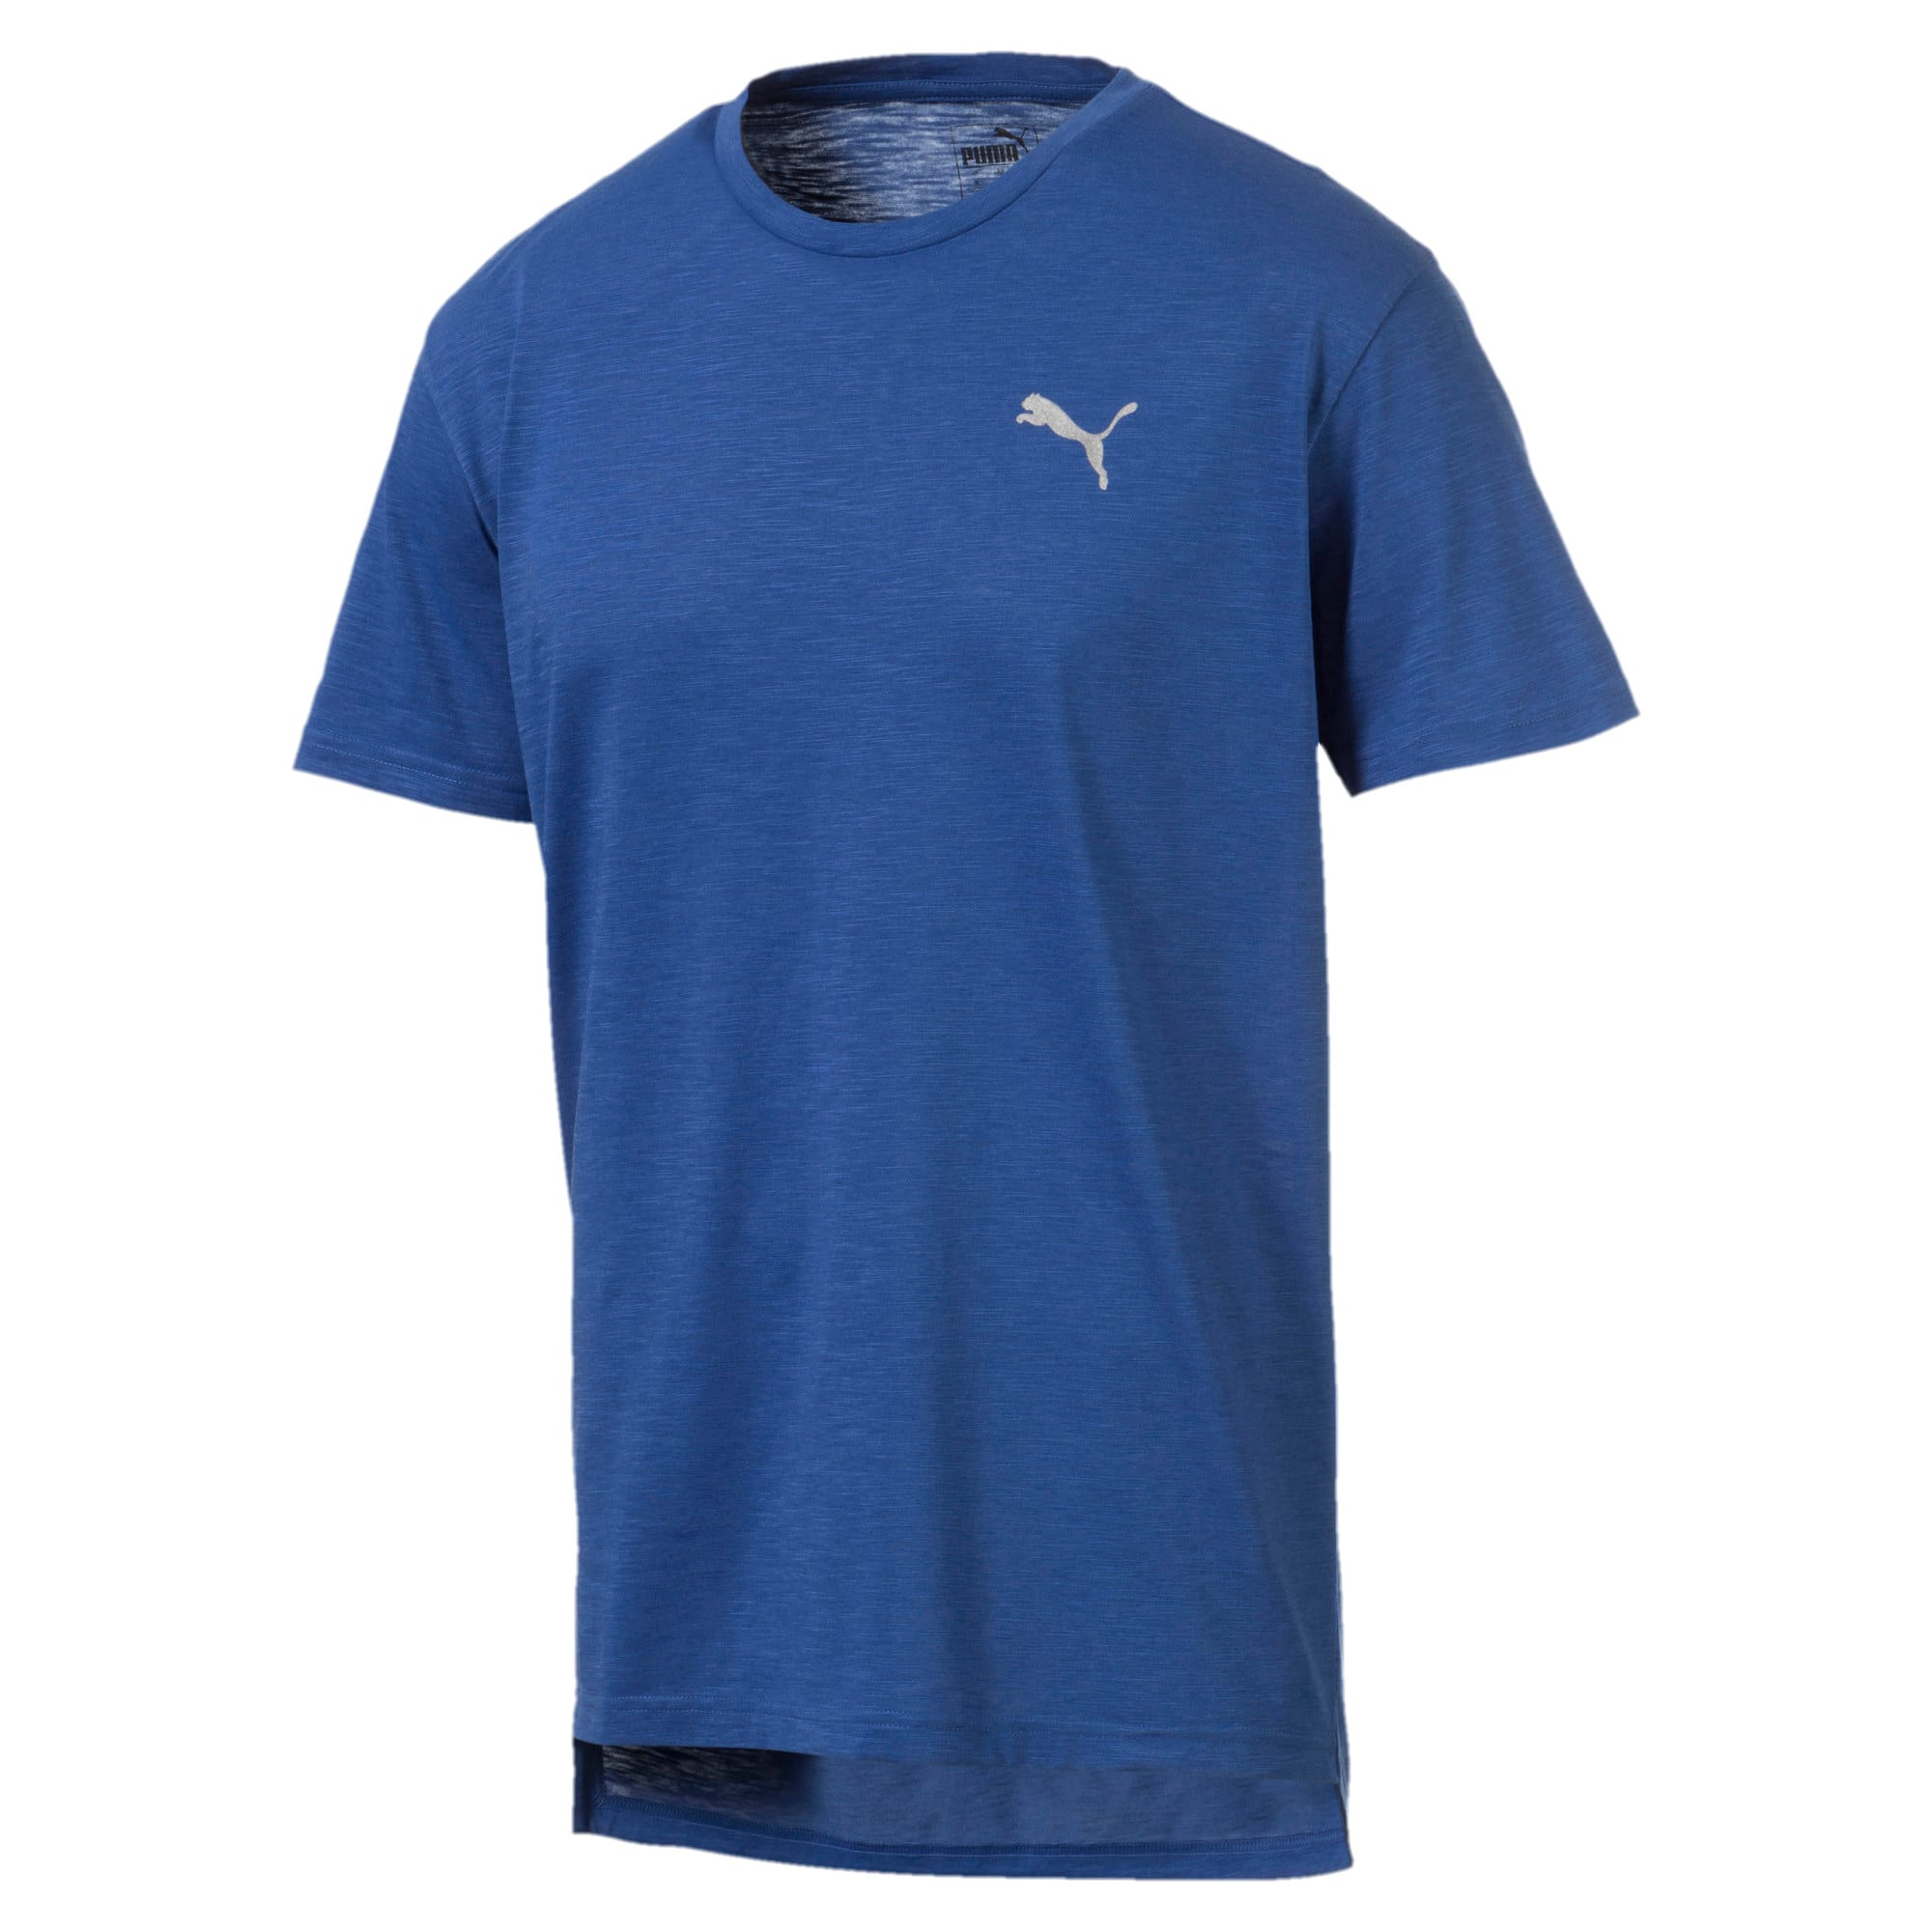 Thumbnail 4 of Energy Herren Training T-Shirt, Galaxy Blue Heather, medium